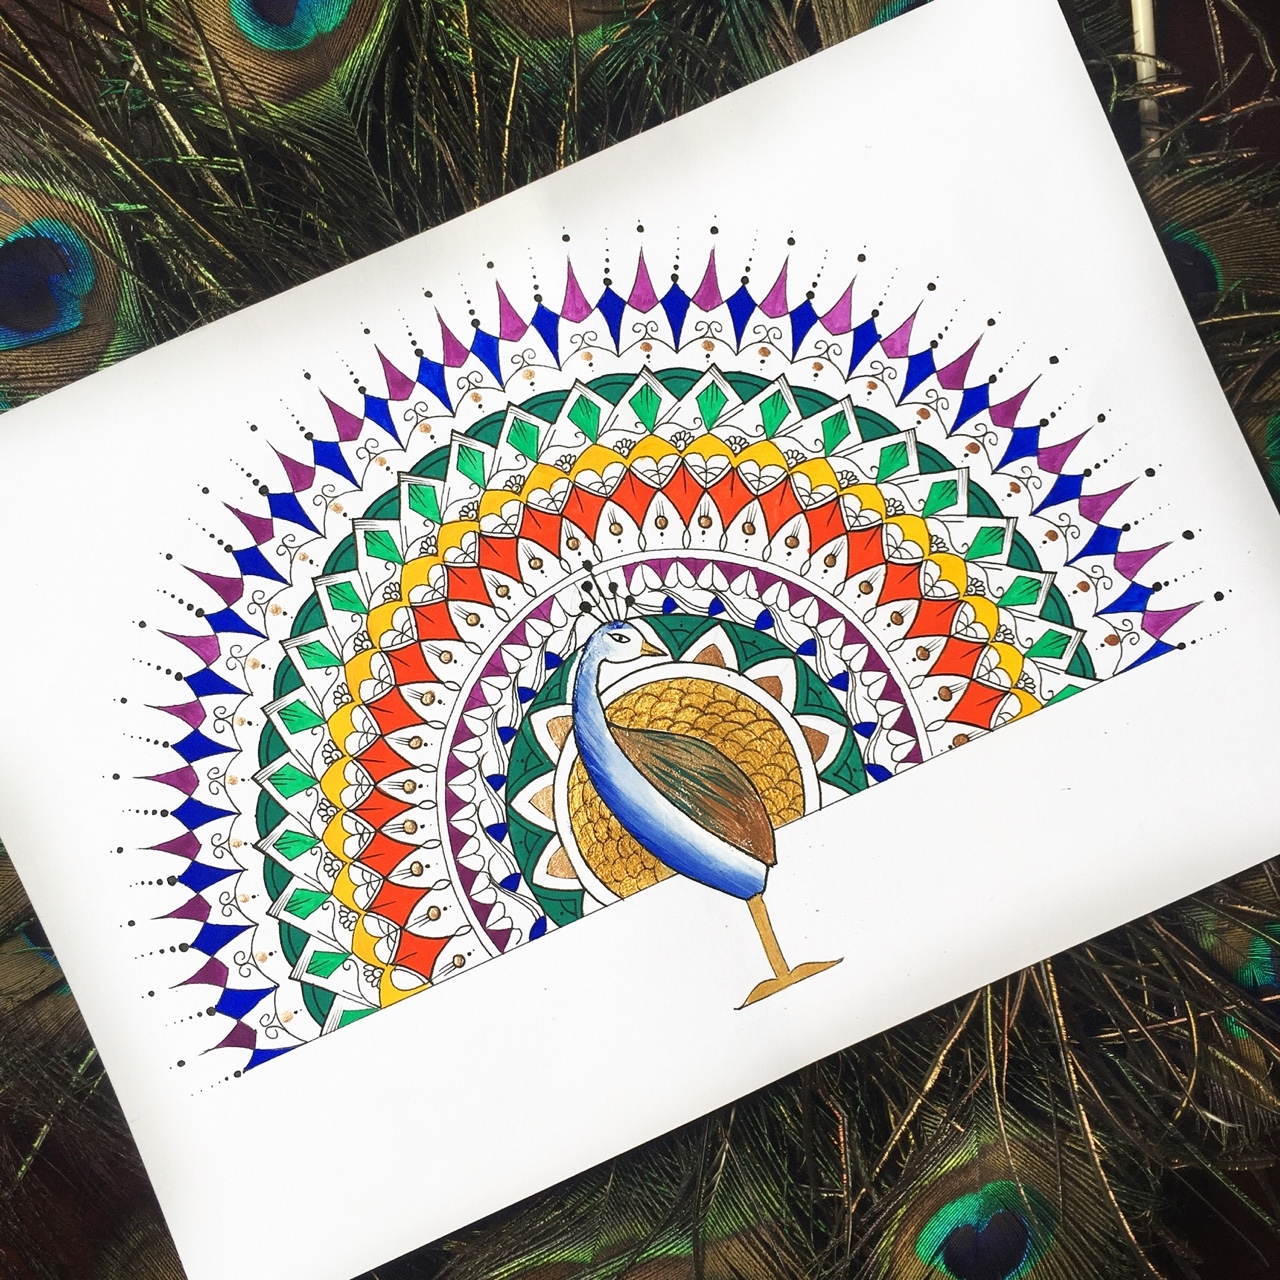 14-Peacock-Dilrani-Kauris-Symmetry-and-Style-in-Mandala-and-Mehndi-Drawings-www-designstack-co